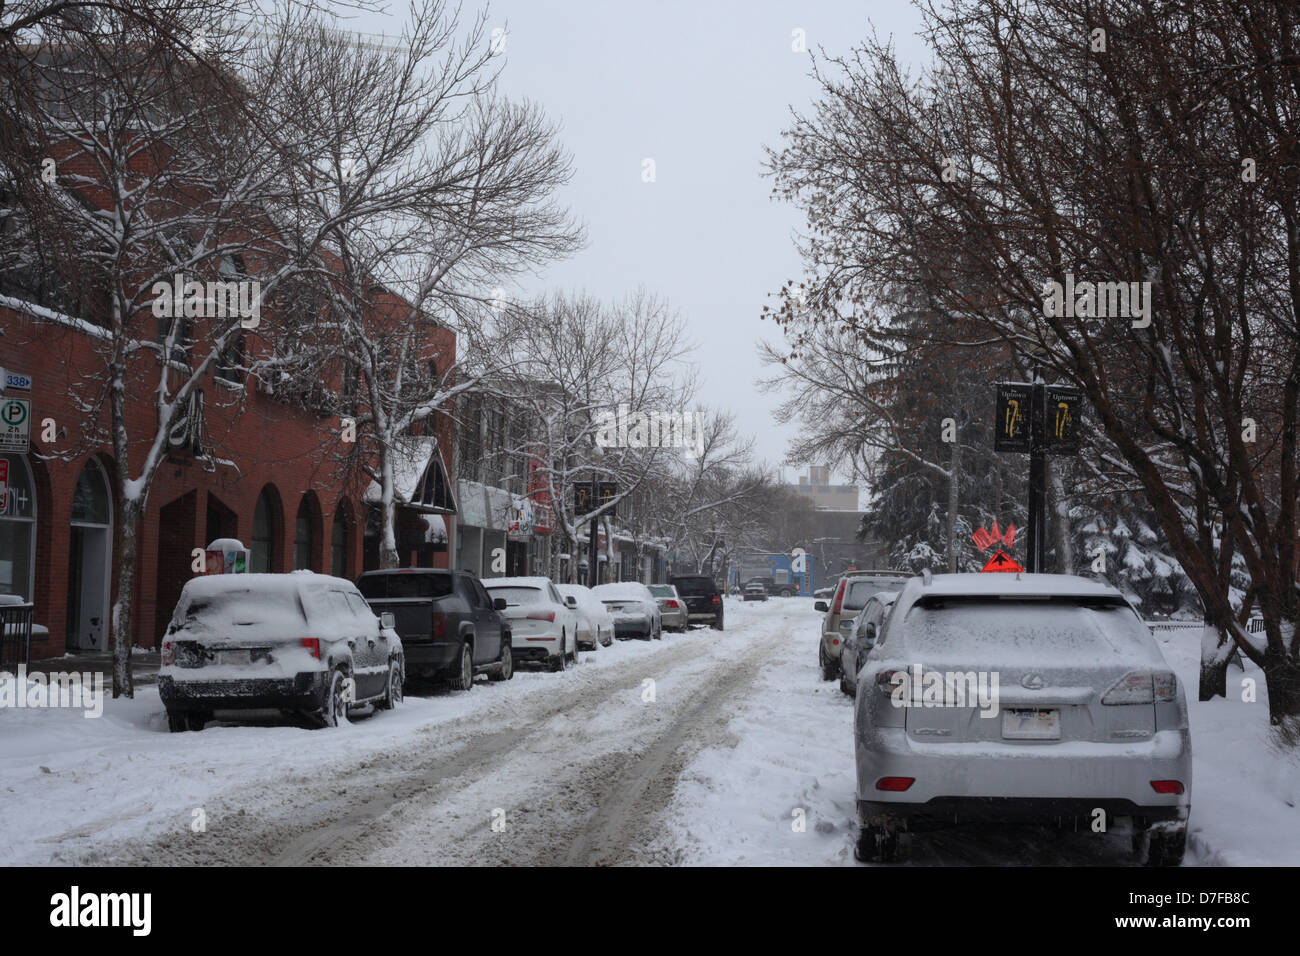 After the spring snowstorm in Calgary, Alberta - Stock Image